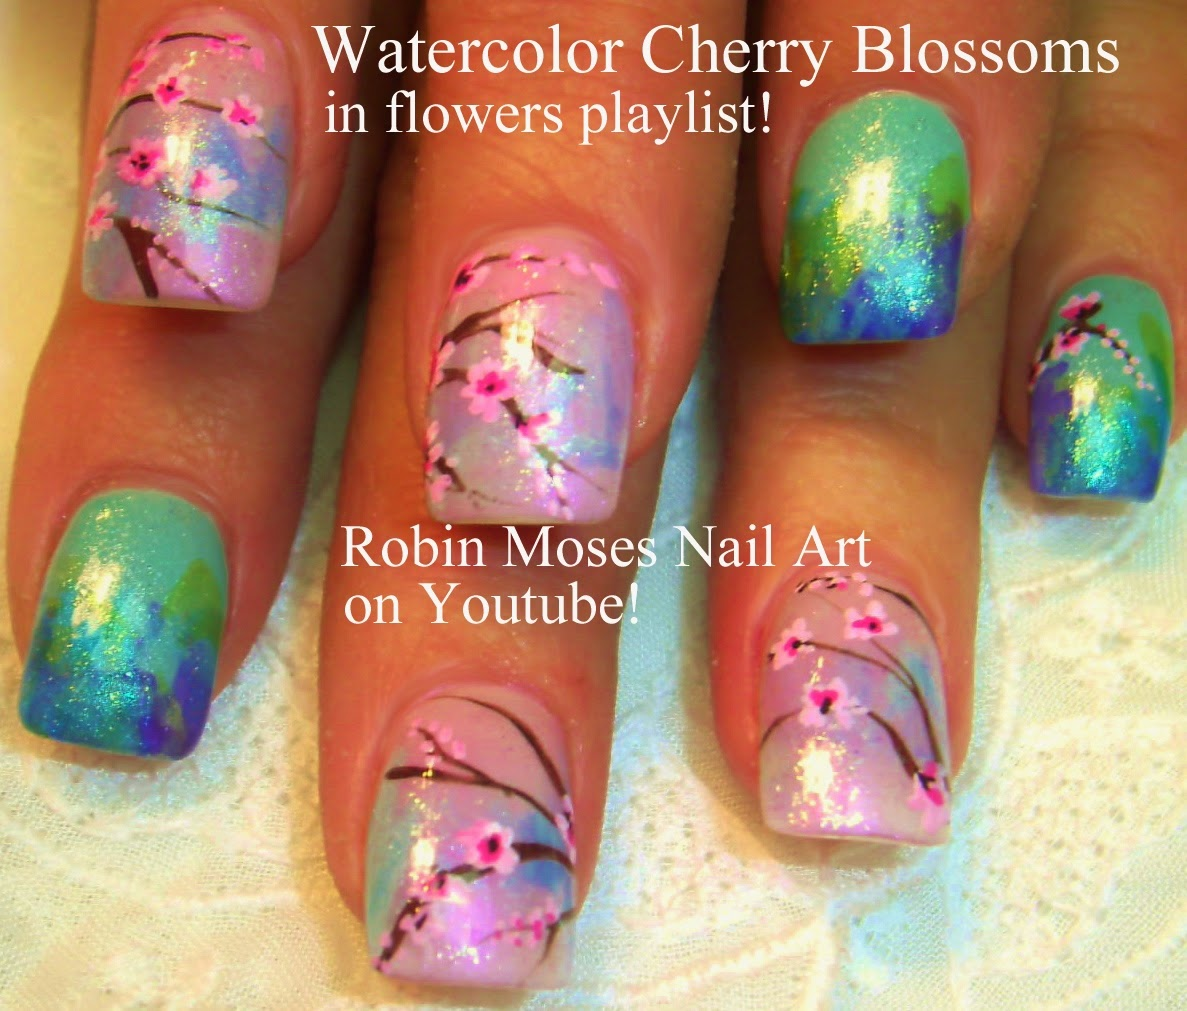 Robin Moses Nail Art Designs: Robin Moses Nail Art: April 2014